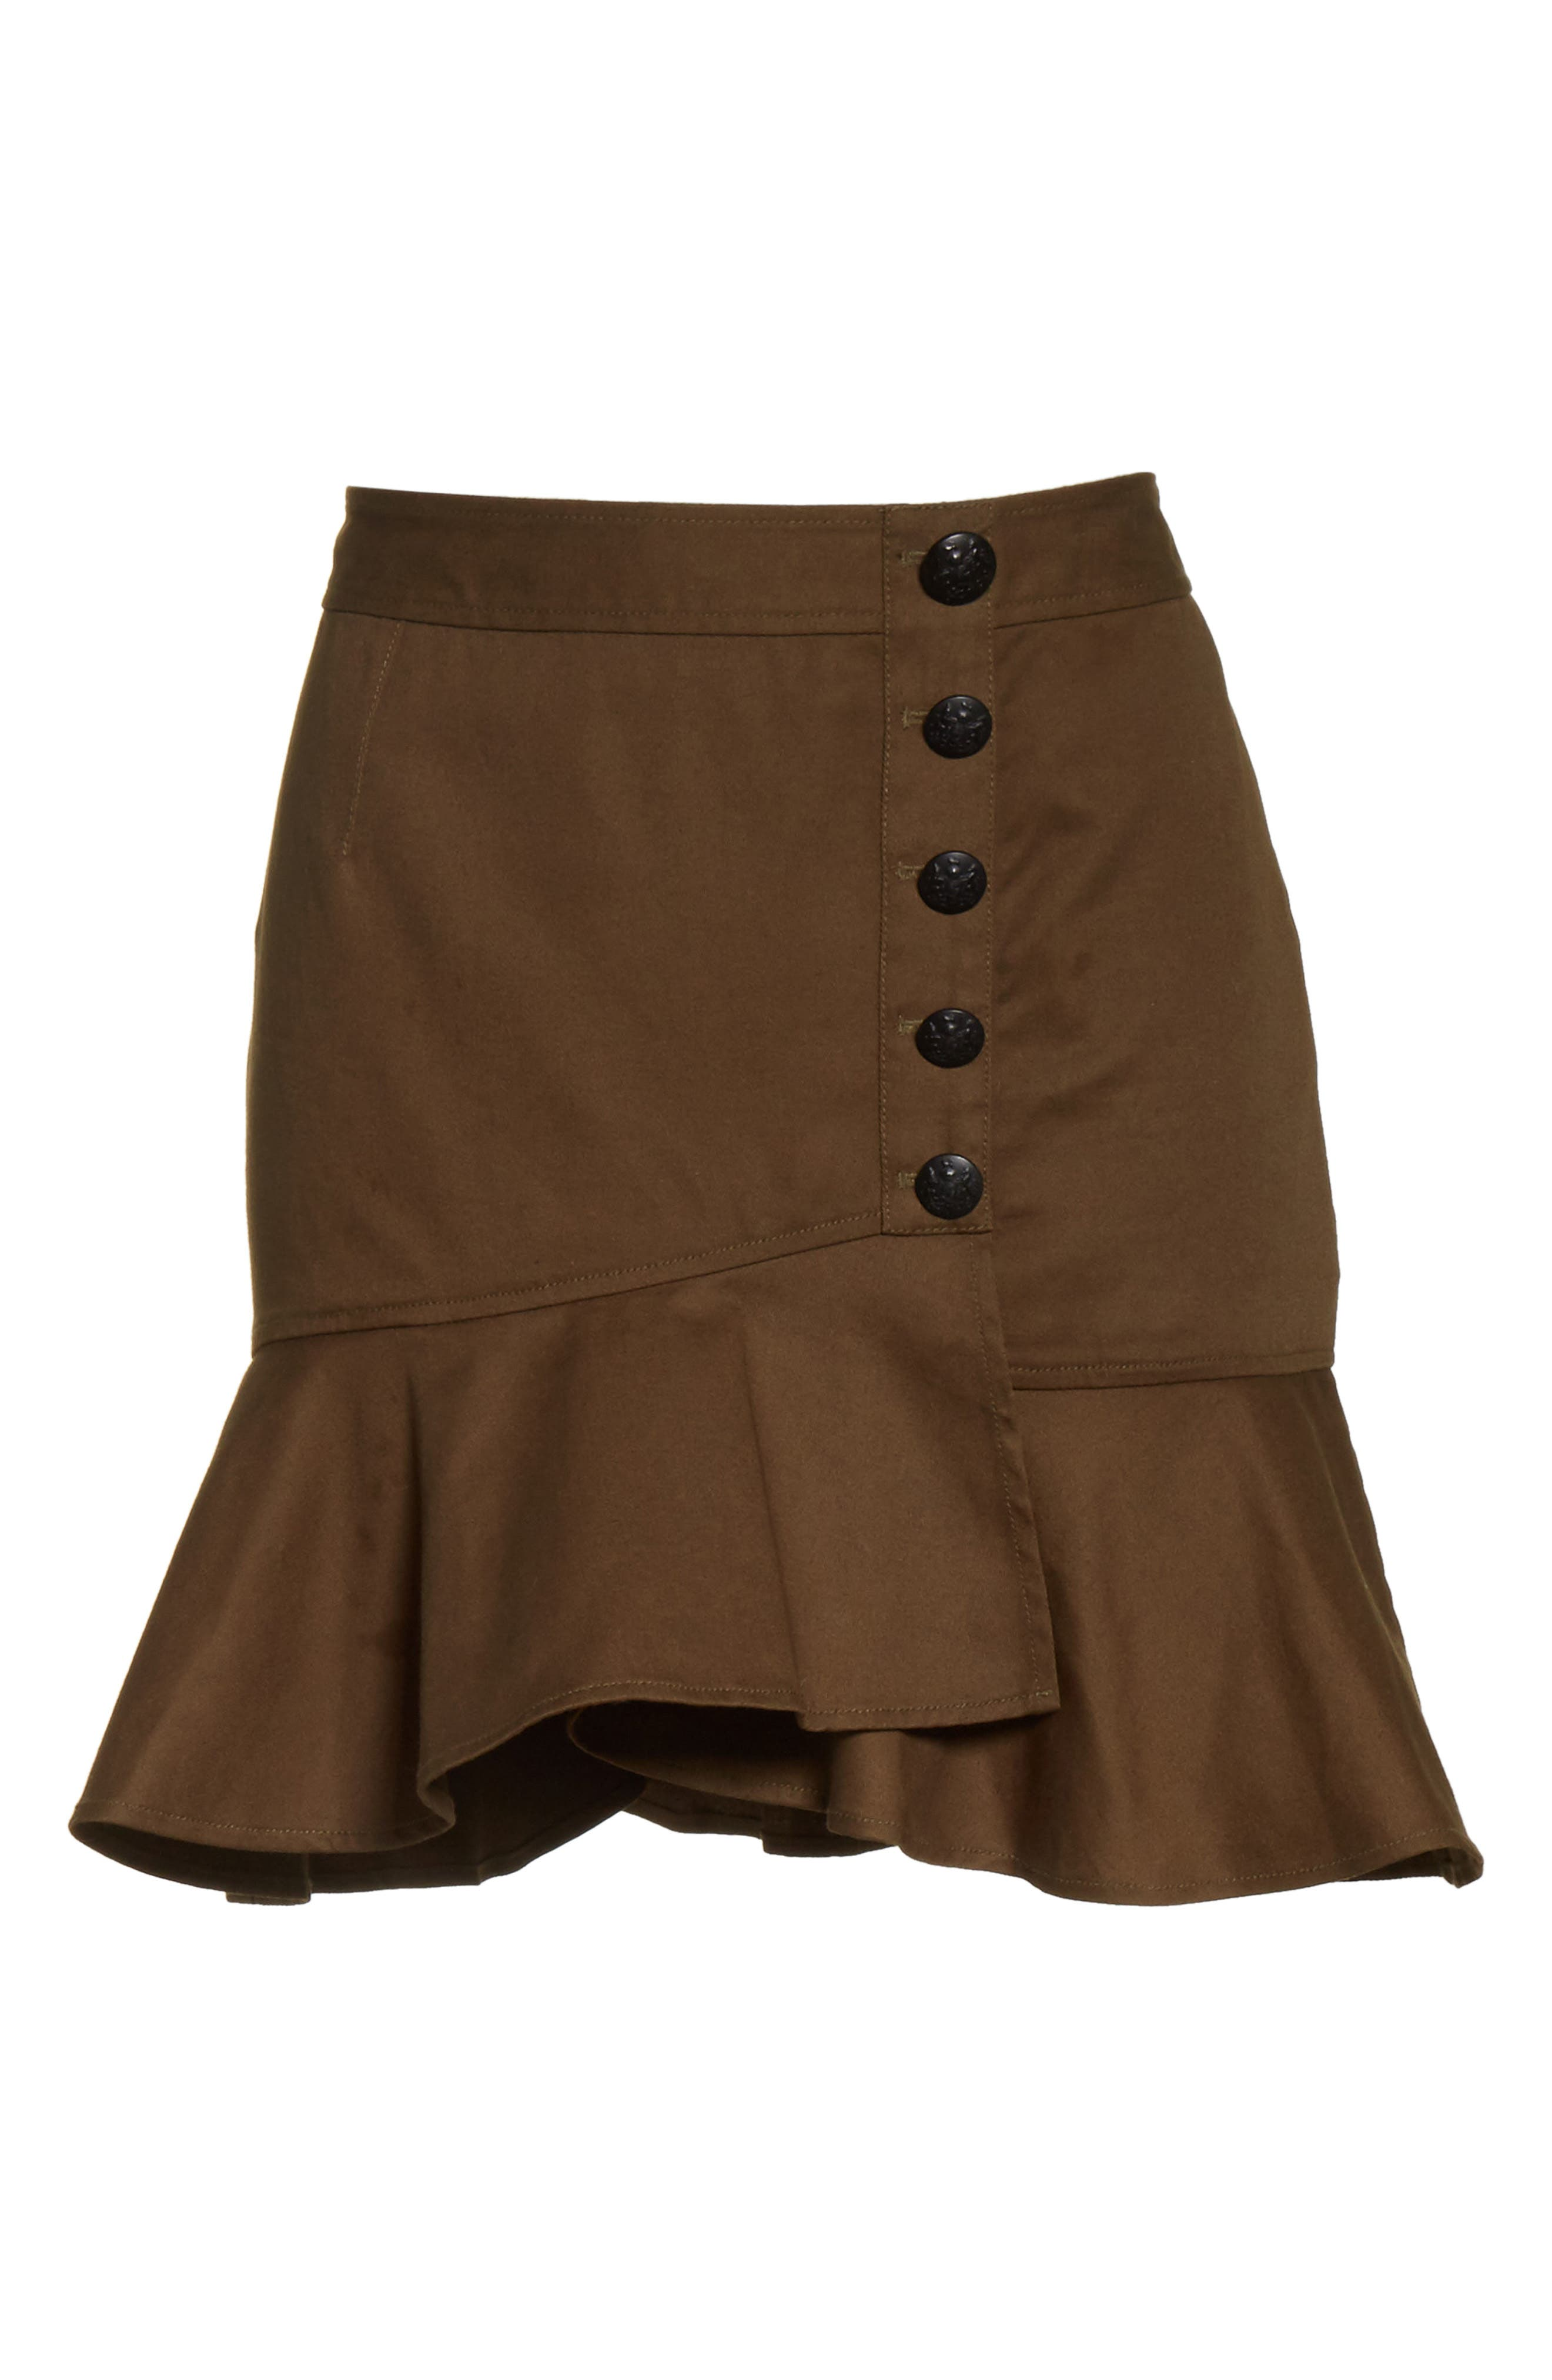 Claremont Flounce Skirt,                             Alternate thumbnail 6, color,                             310